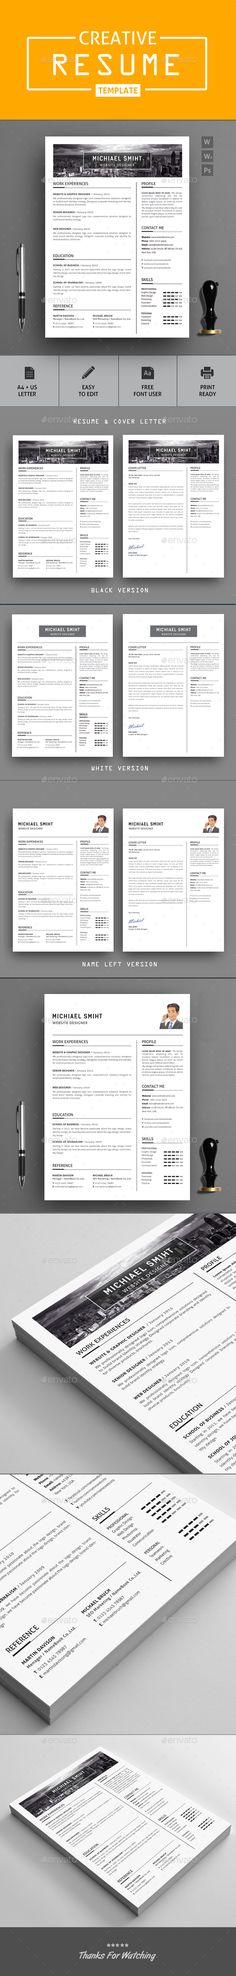 #creative #modern #Resume #template - #simple Resumes Stationery #design. download; https://graphicriver.net/item/resume/20366324?ref=yinkira